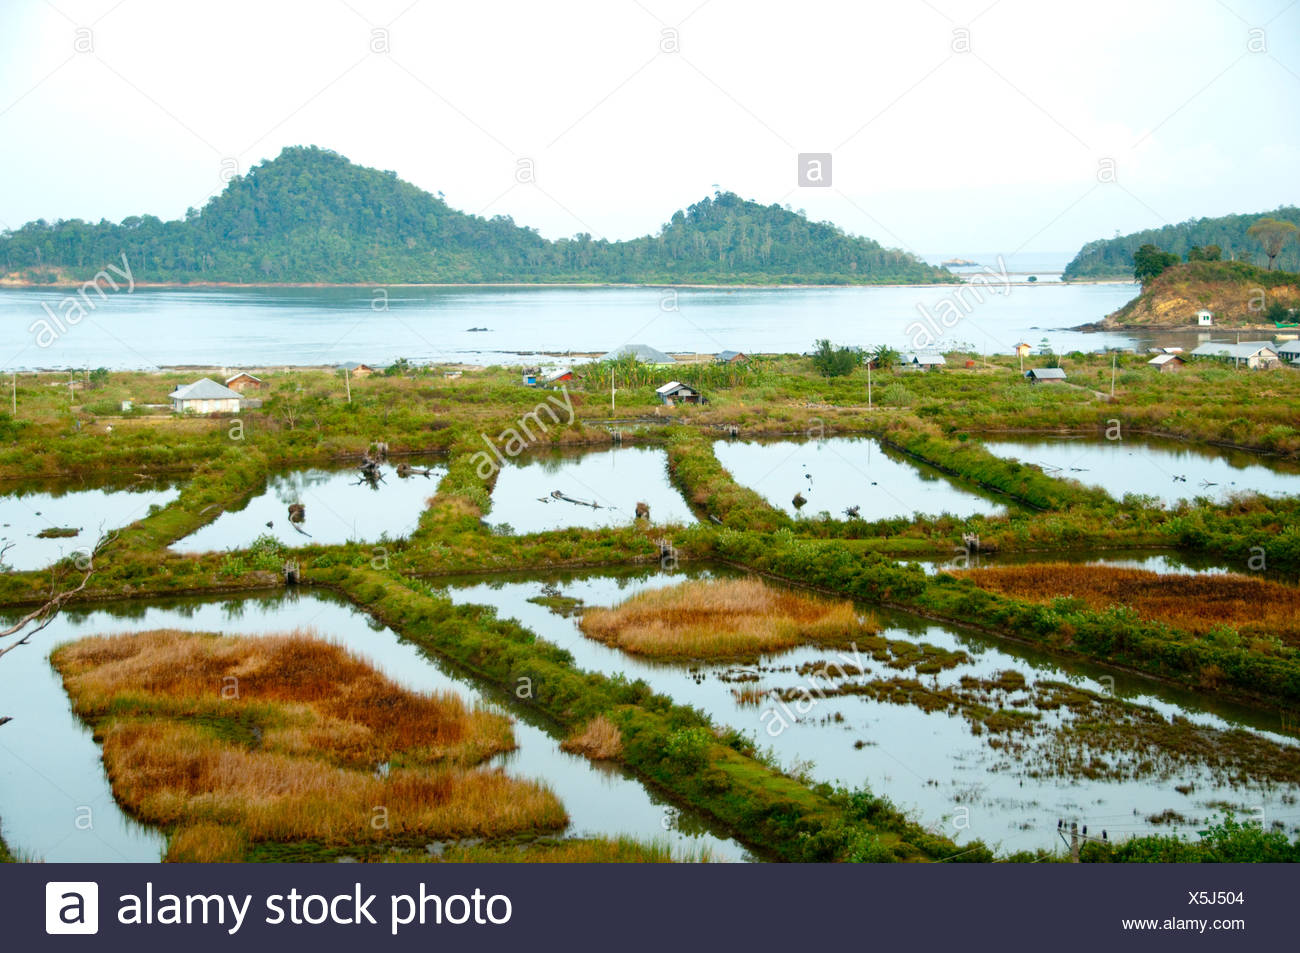 Saltwater intrusion caused by the 2004 tsunami destroys rice paddies. - Stock Image